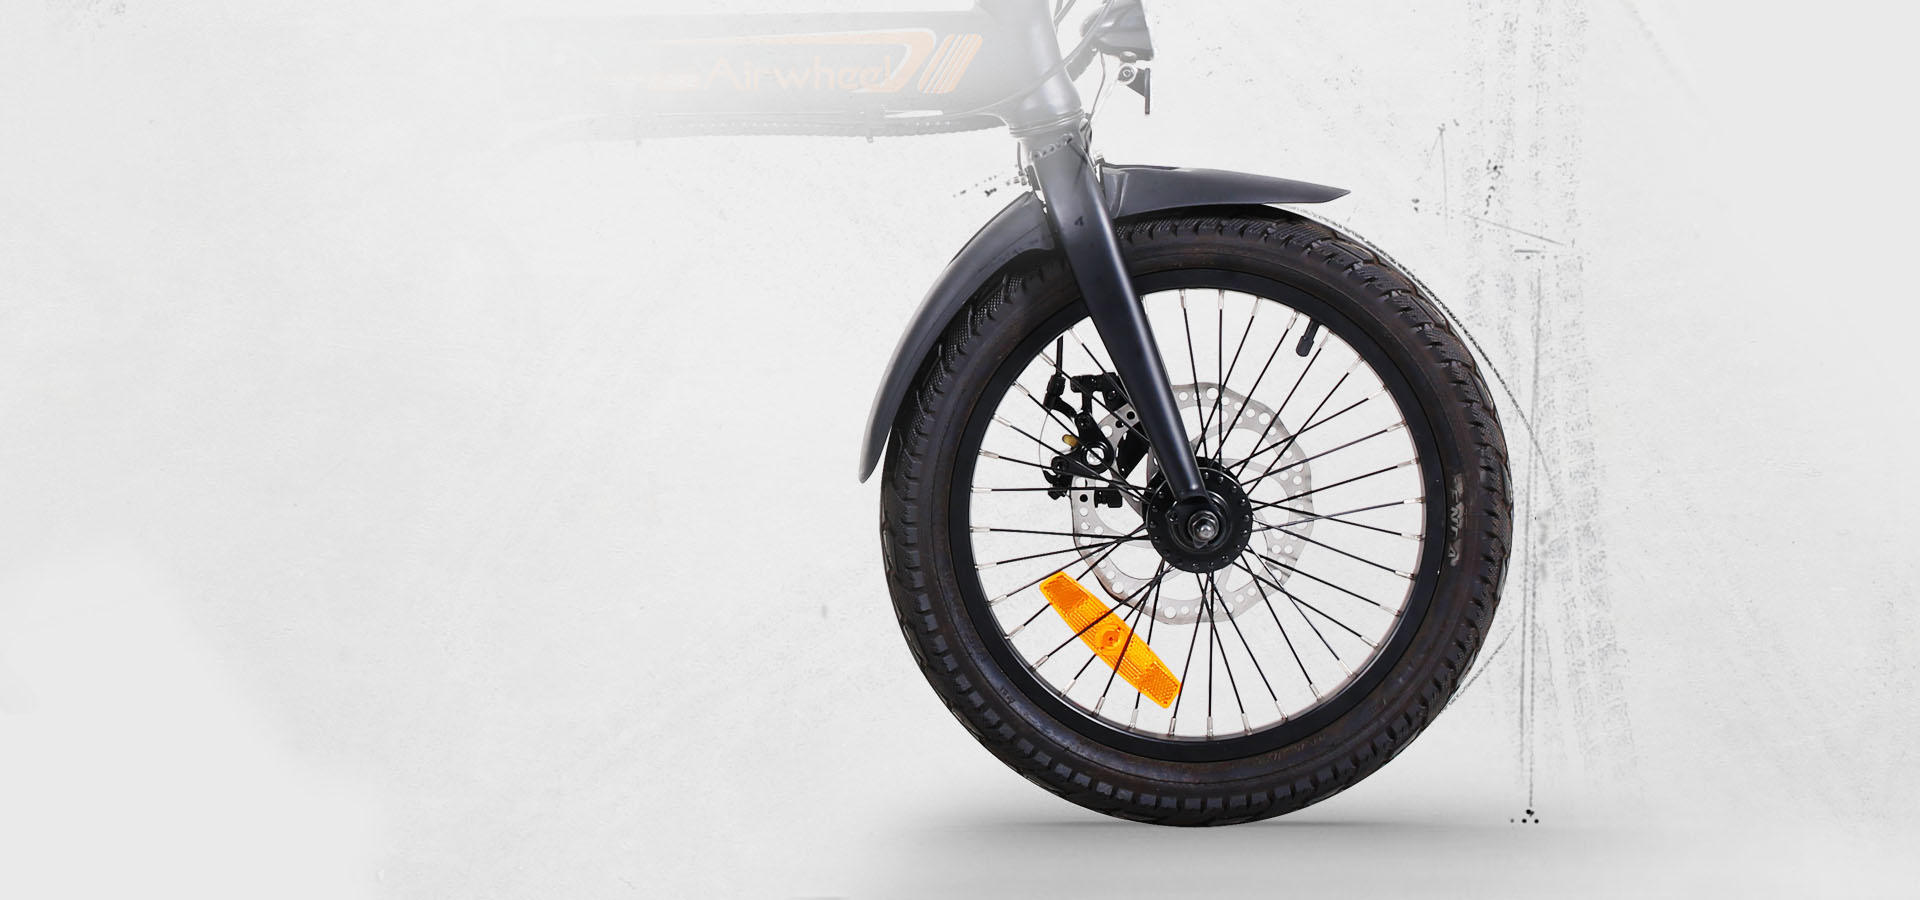 http://us.airwheel.net/images/r5/r5-tire.jpg